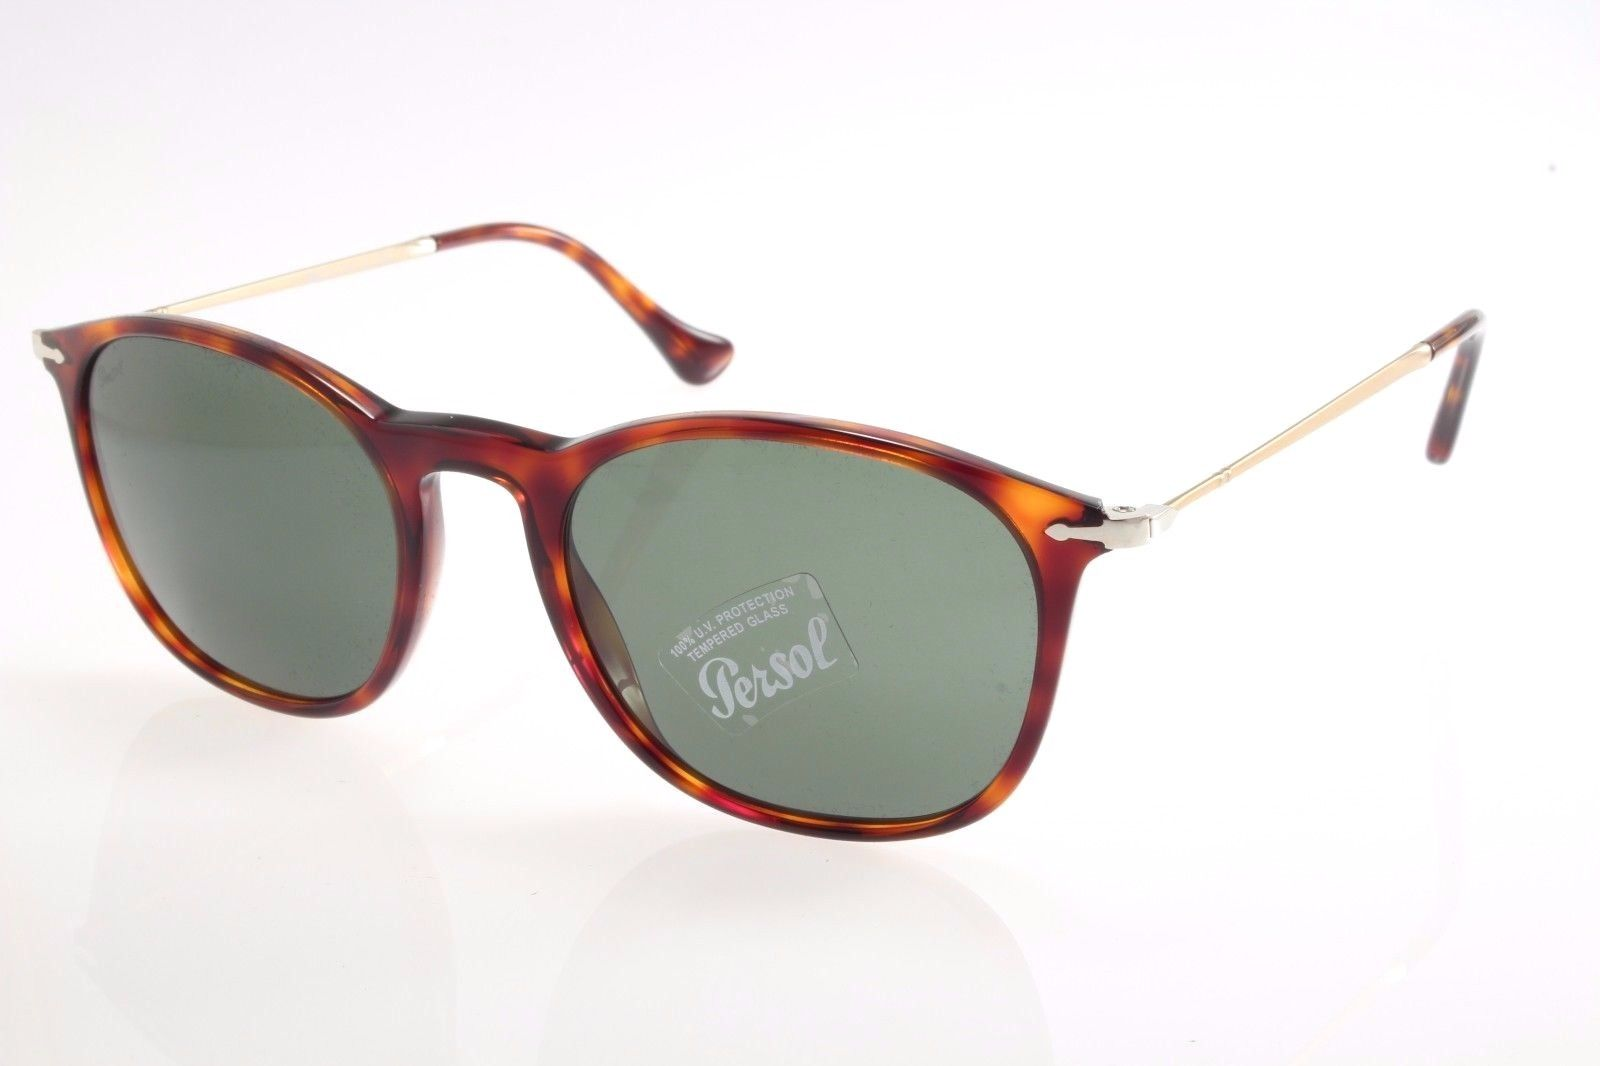 22e05c0dc4 New authentic sunglasses Persol 3124S 24 31 50 Havana Green Crystal 50mm